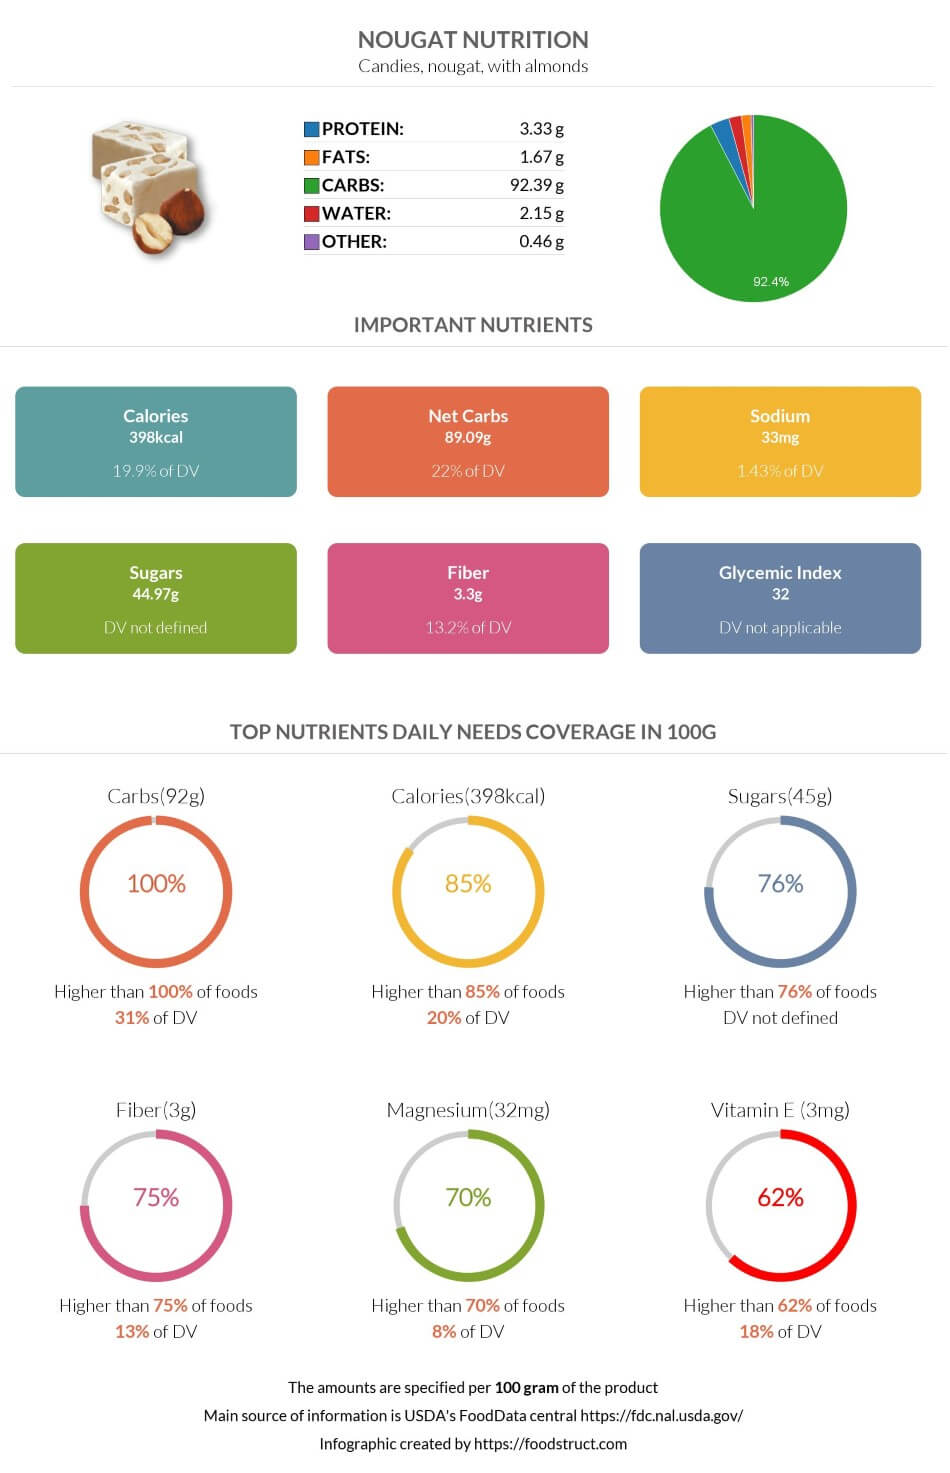 Nougat nutrition infographic